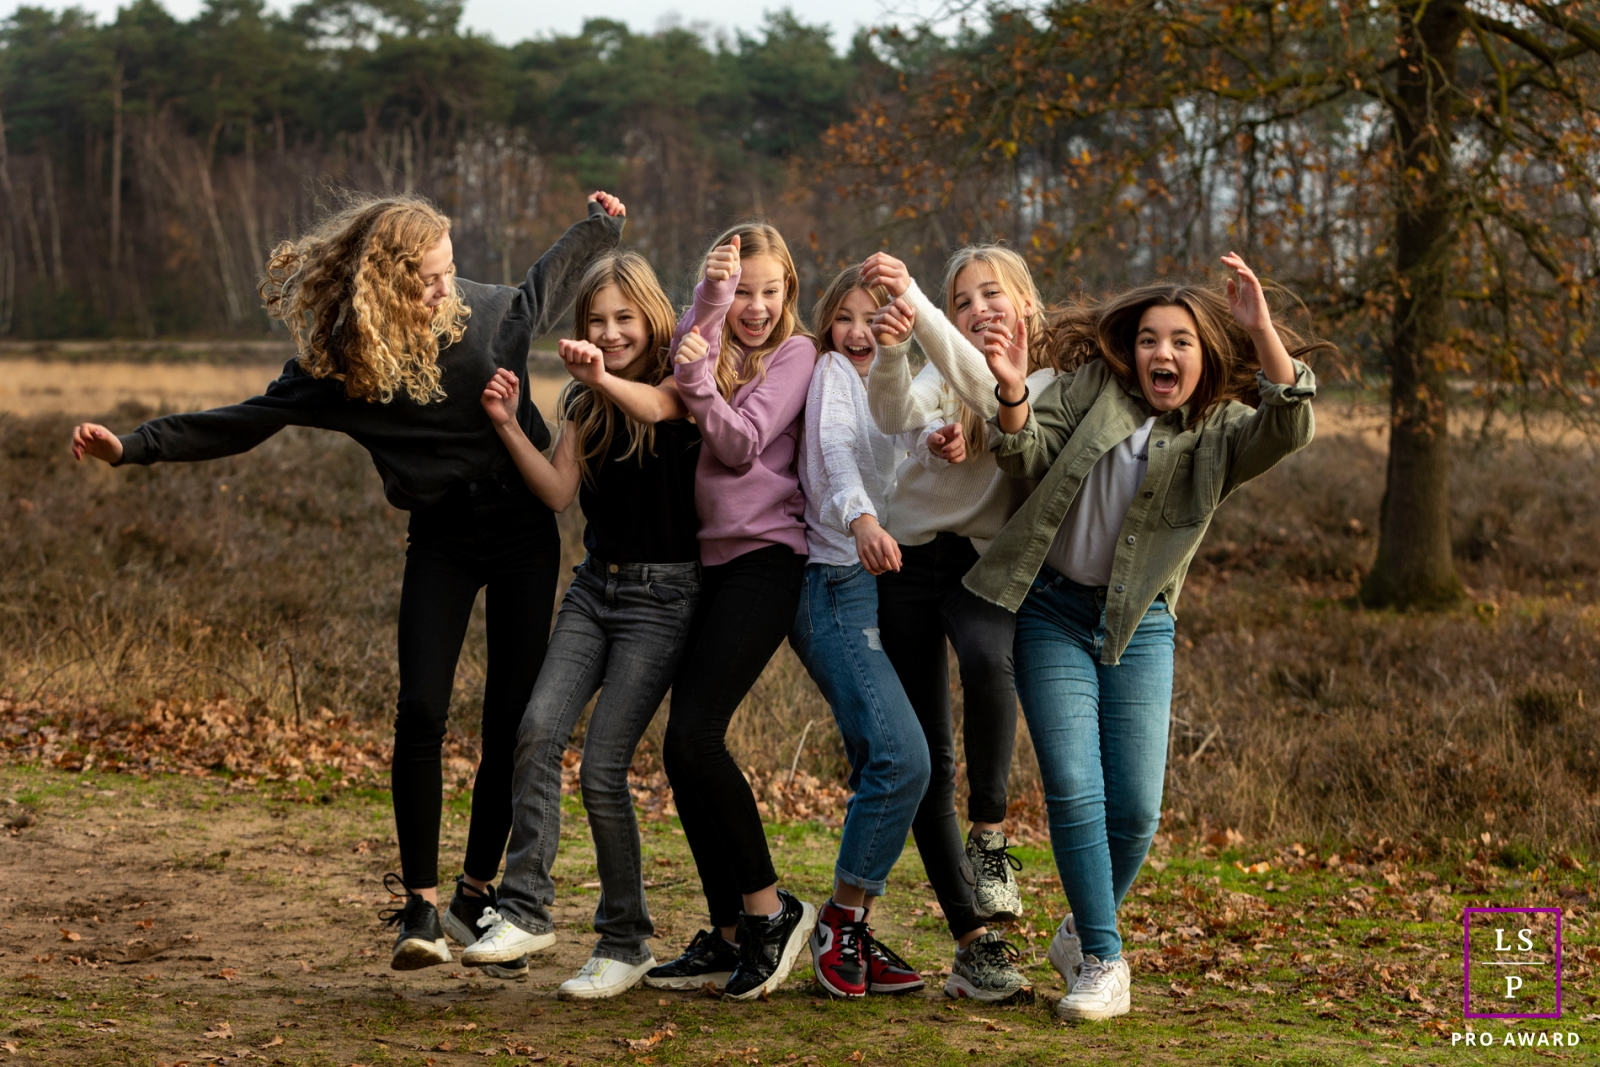 Artistic Gelderland Lifestyle Photography showing some Ladies fun times outside